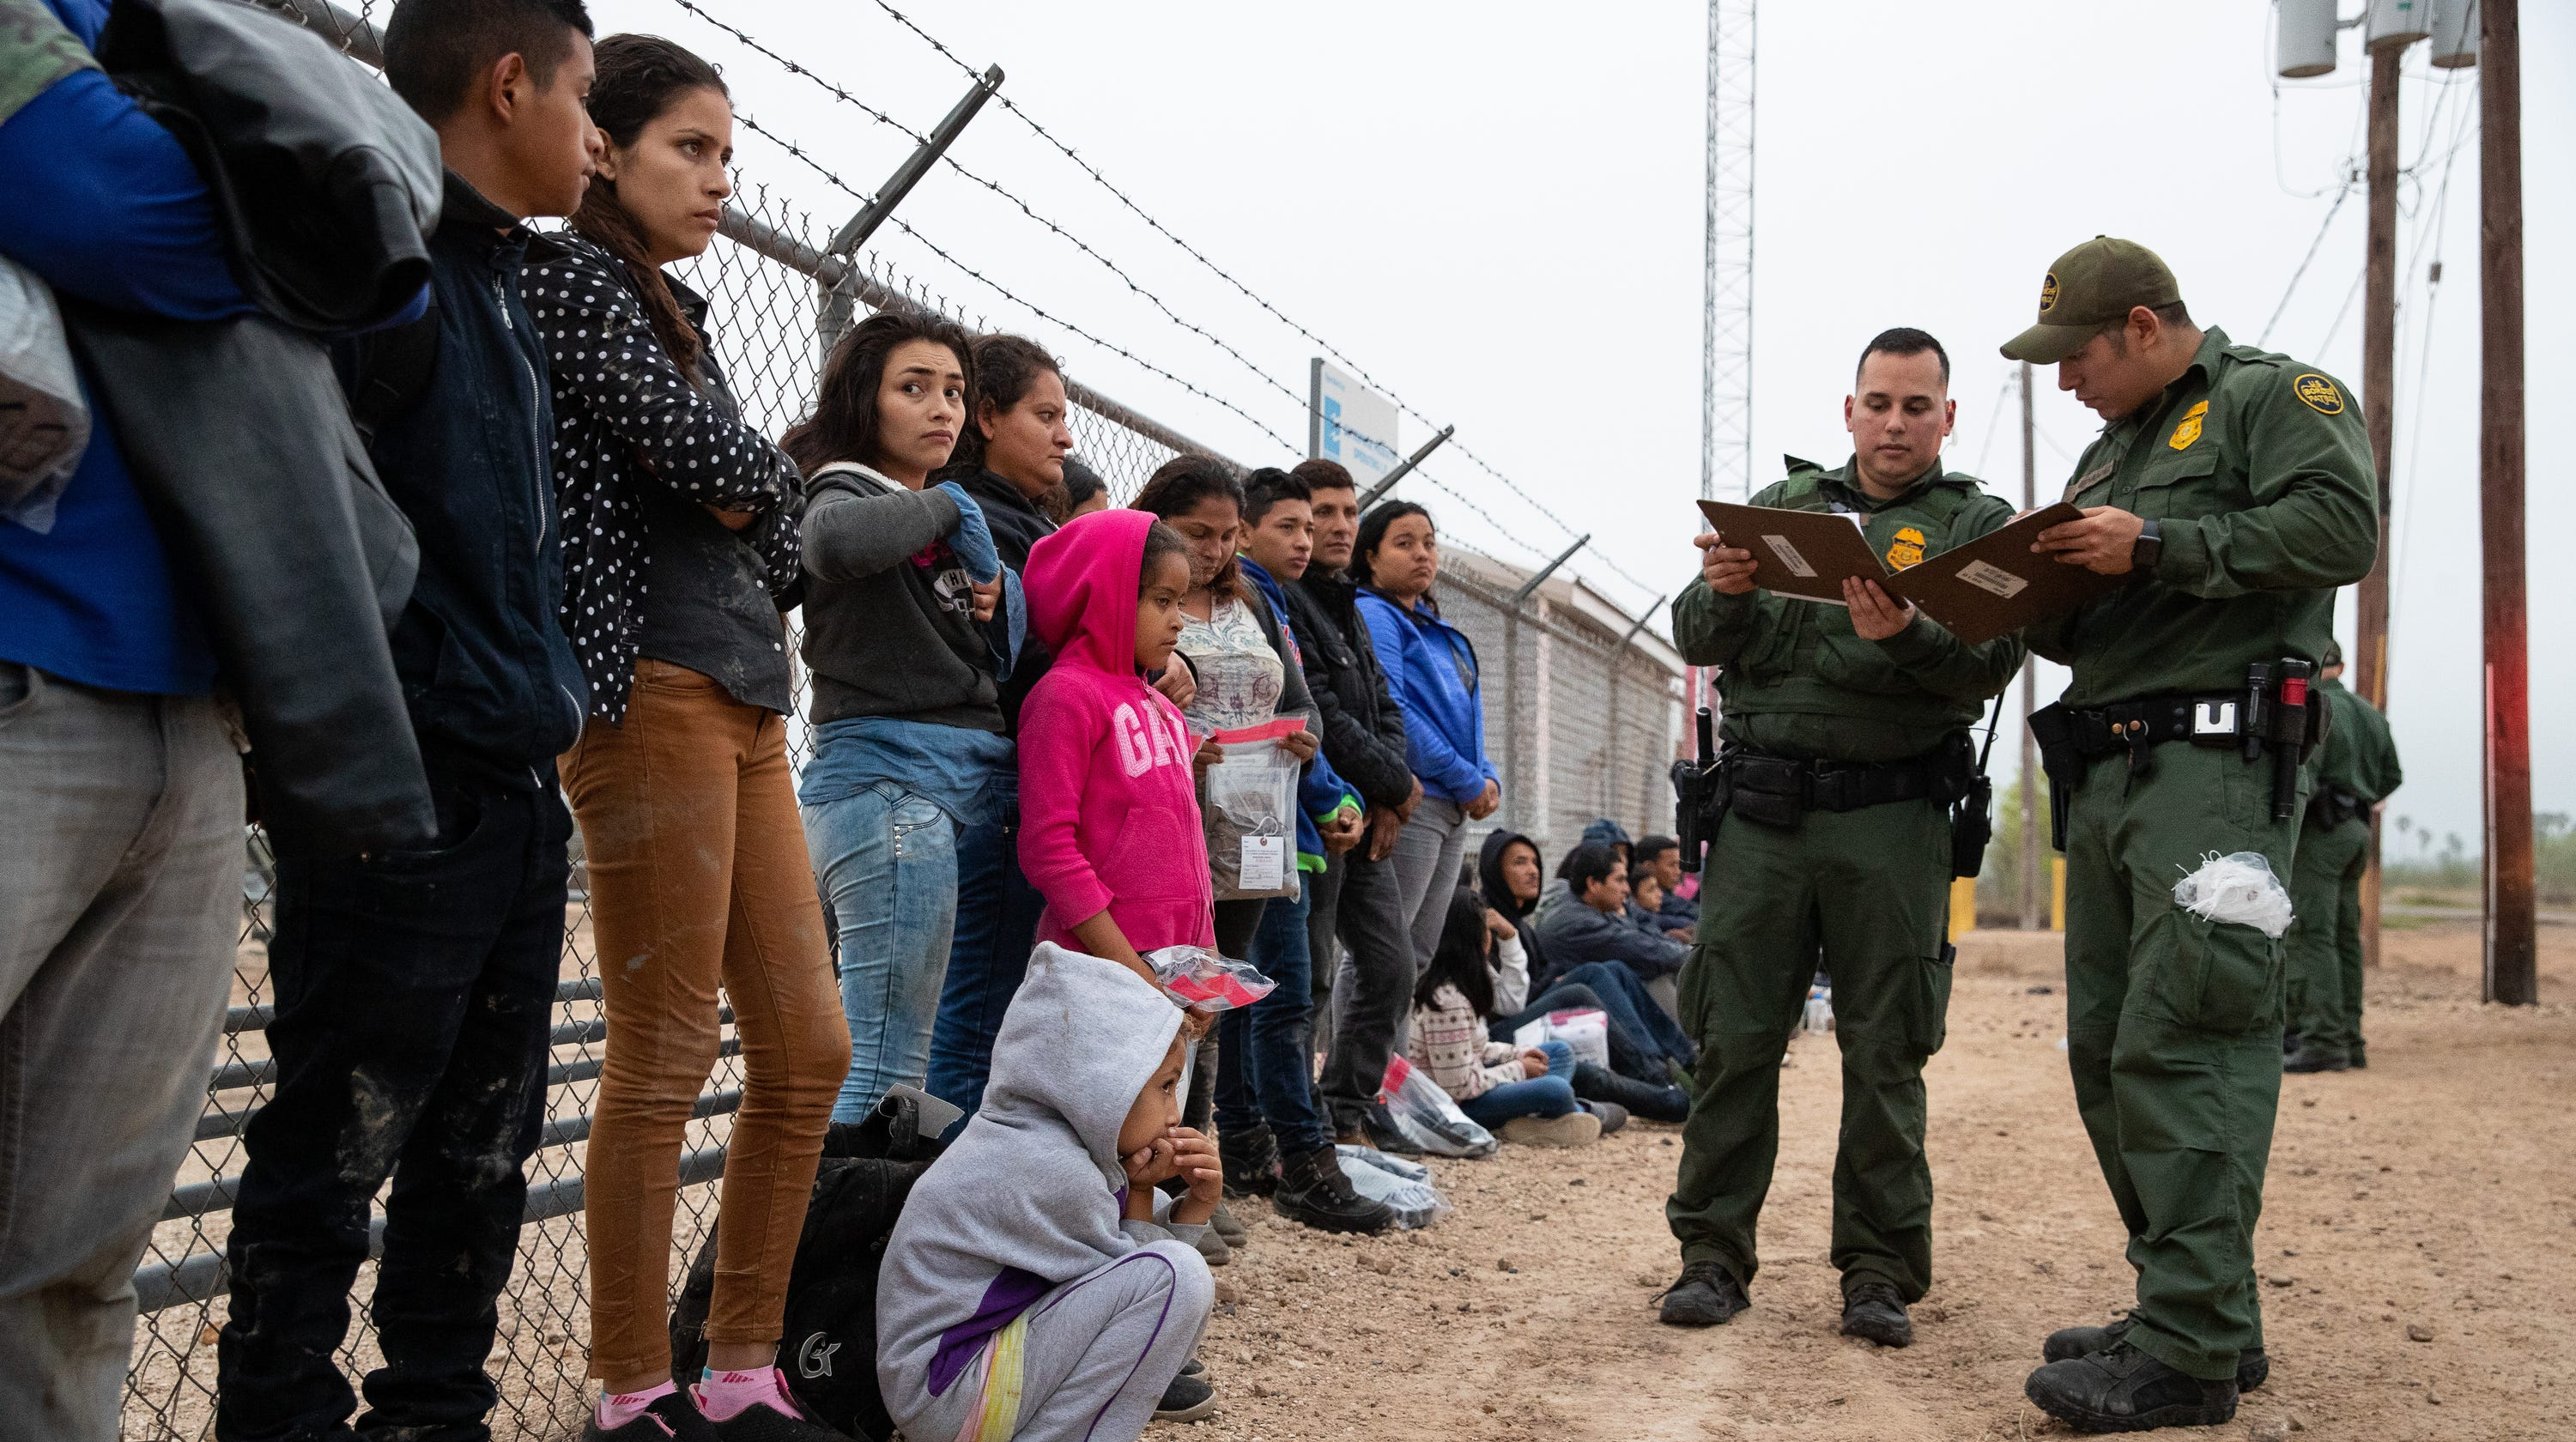 Border Patrol take in 1,000 migrants a day in South Texas